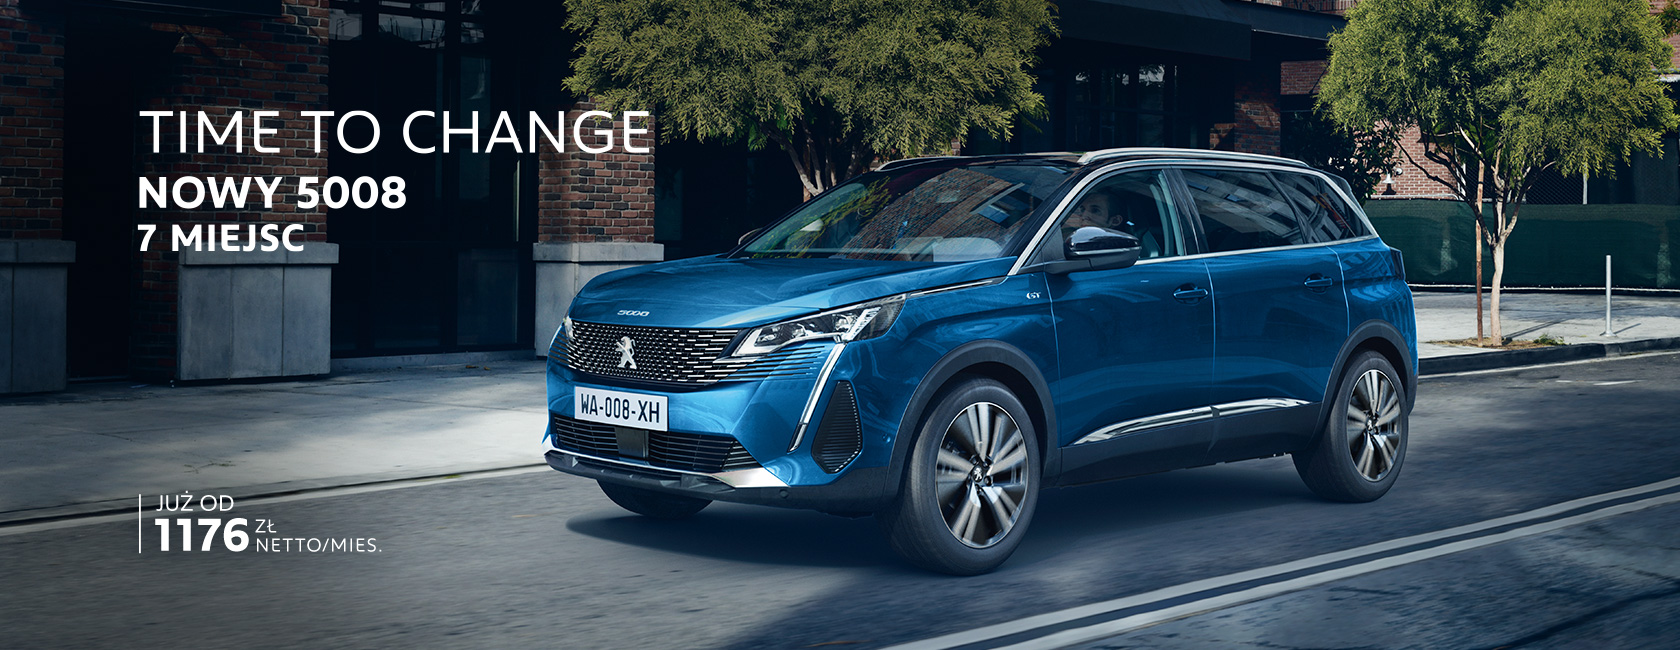 Nowy SUV Peugeot 5008